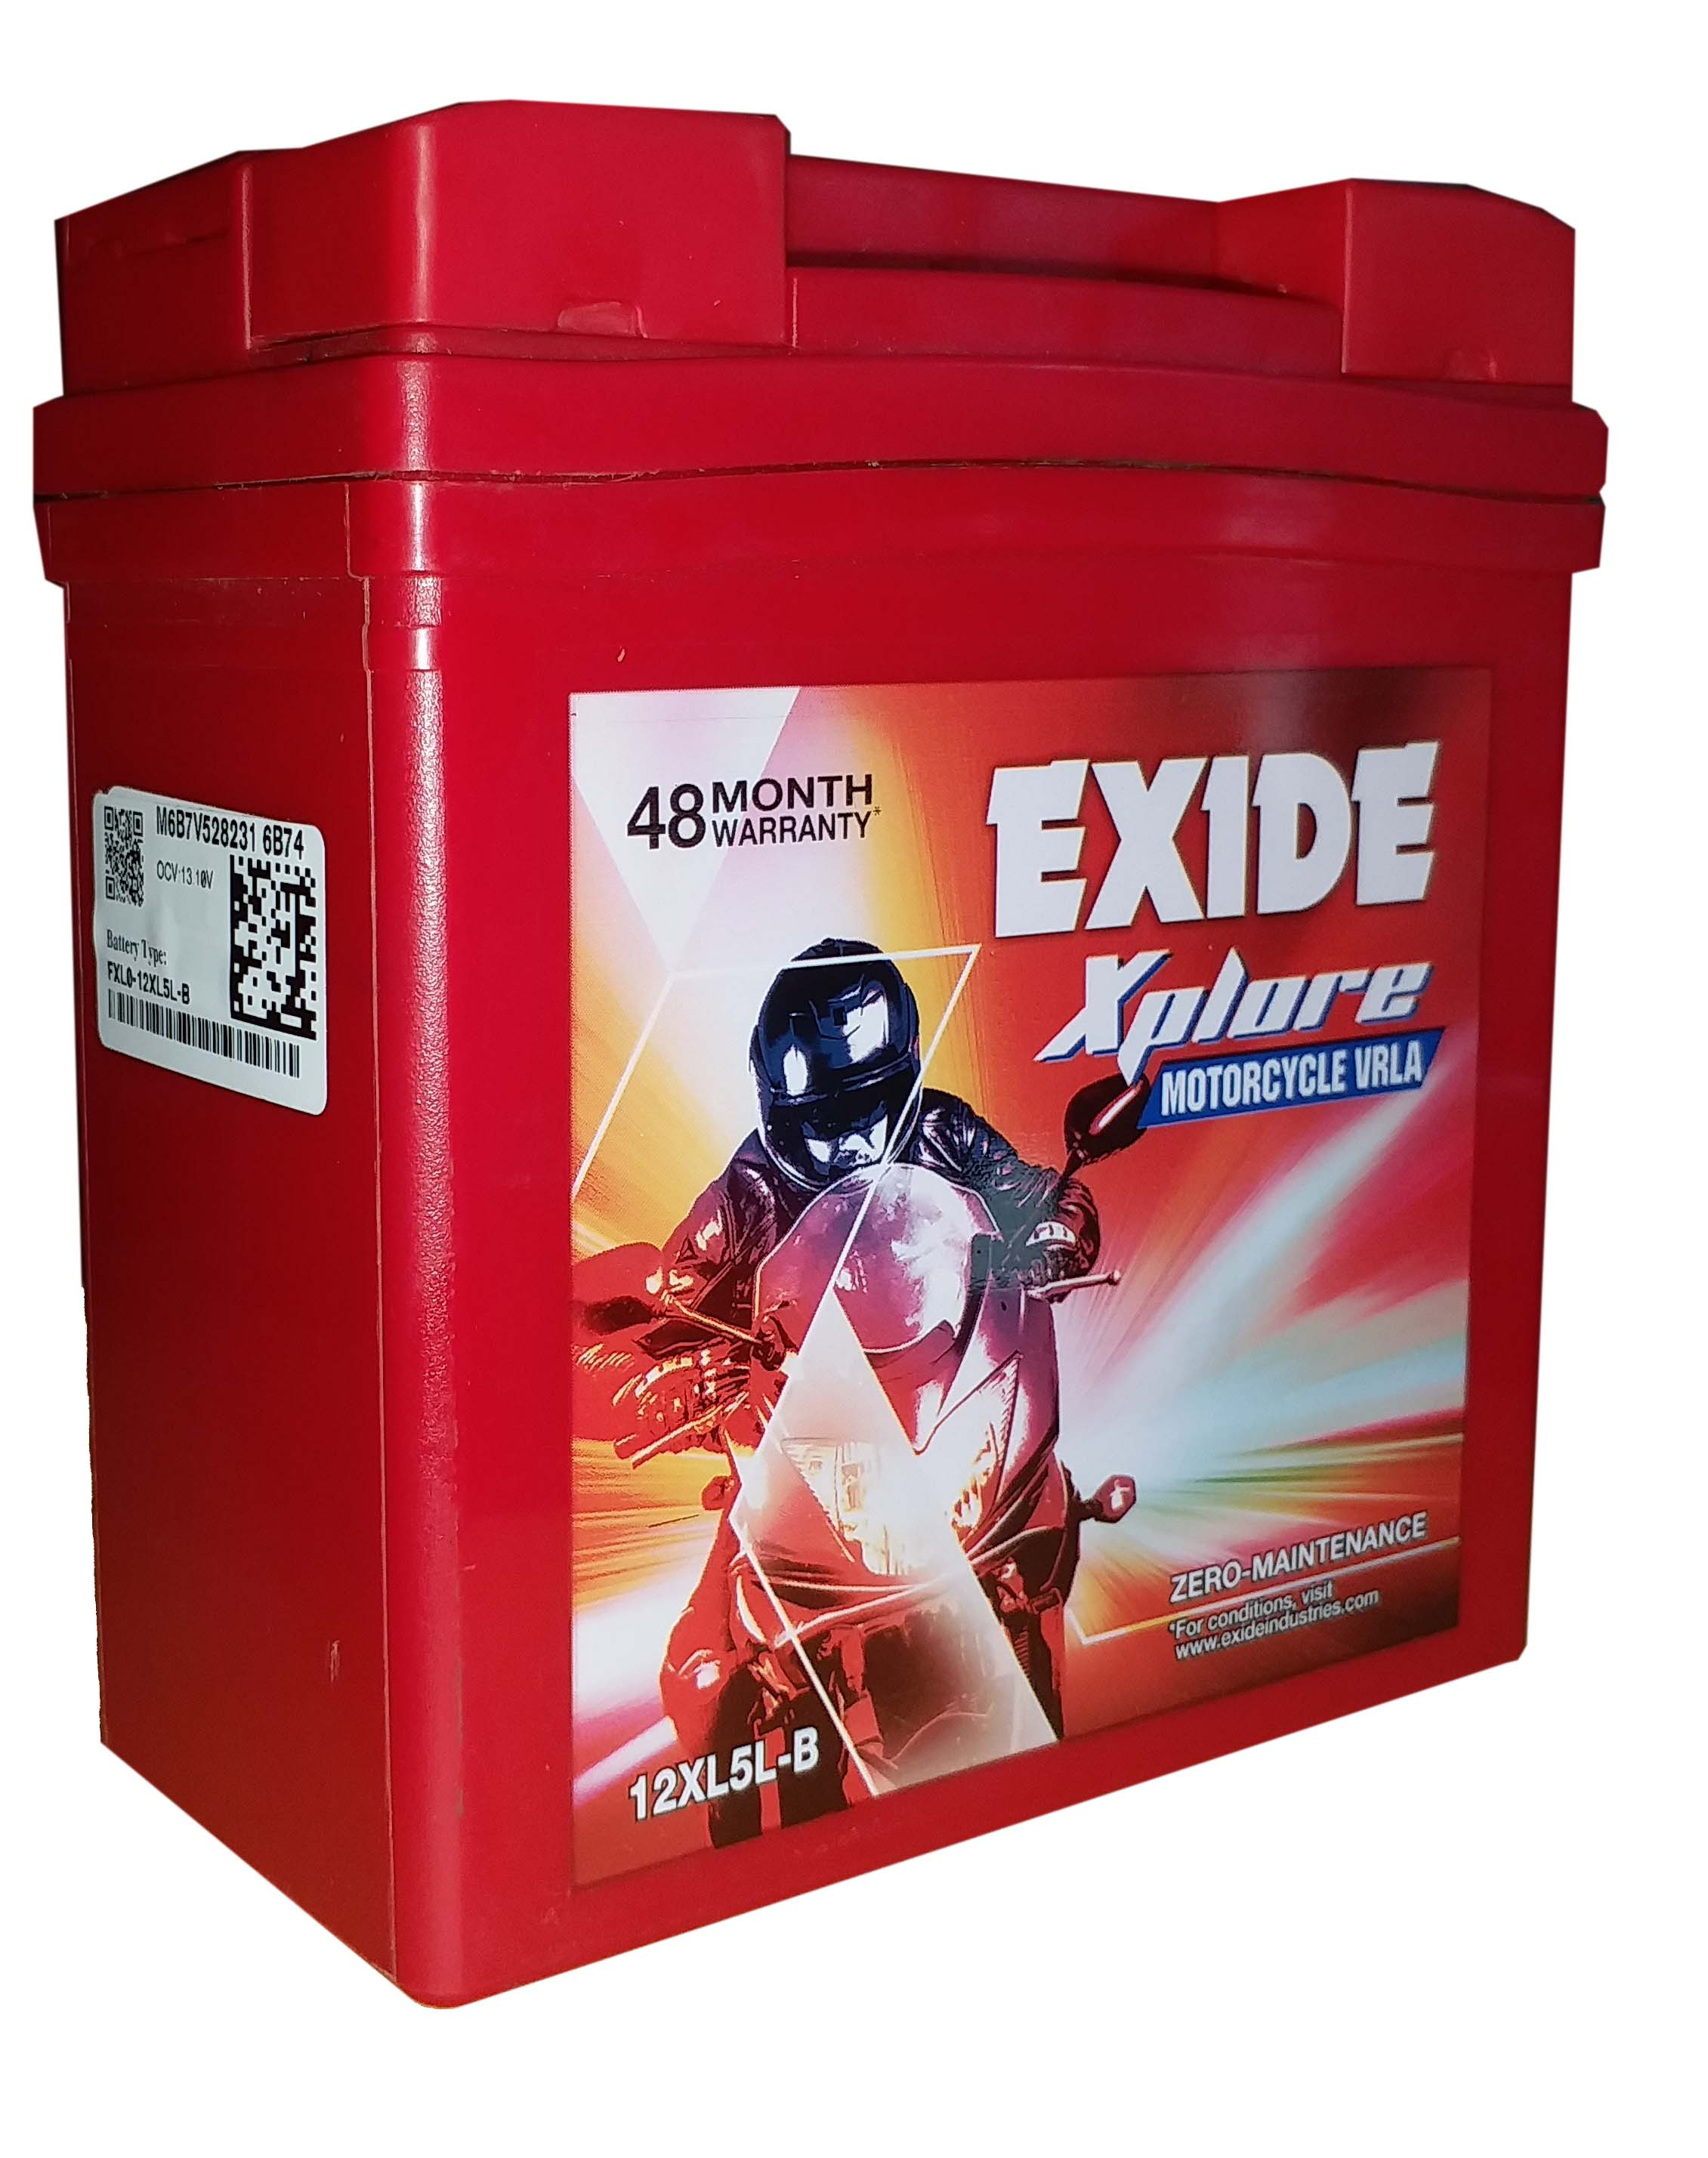 Exide xplore sealed battery for acess 125 discover 100 old model BATTERY 12xl5lb